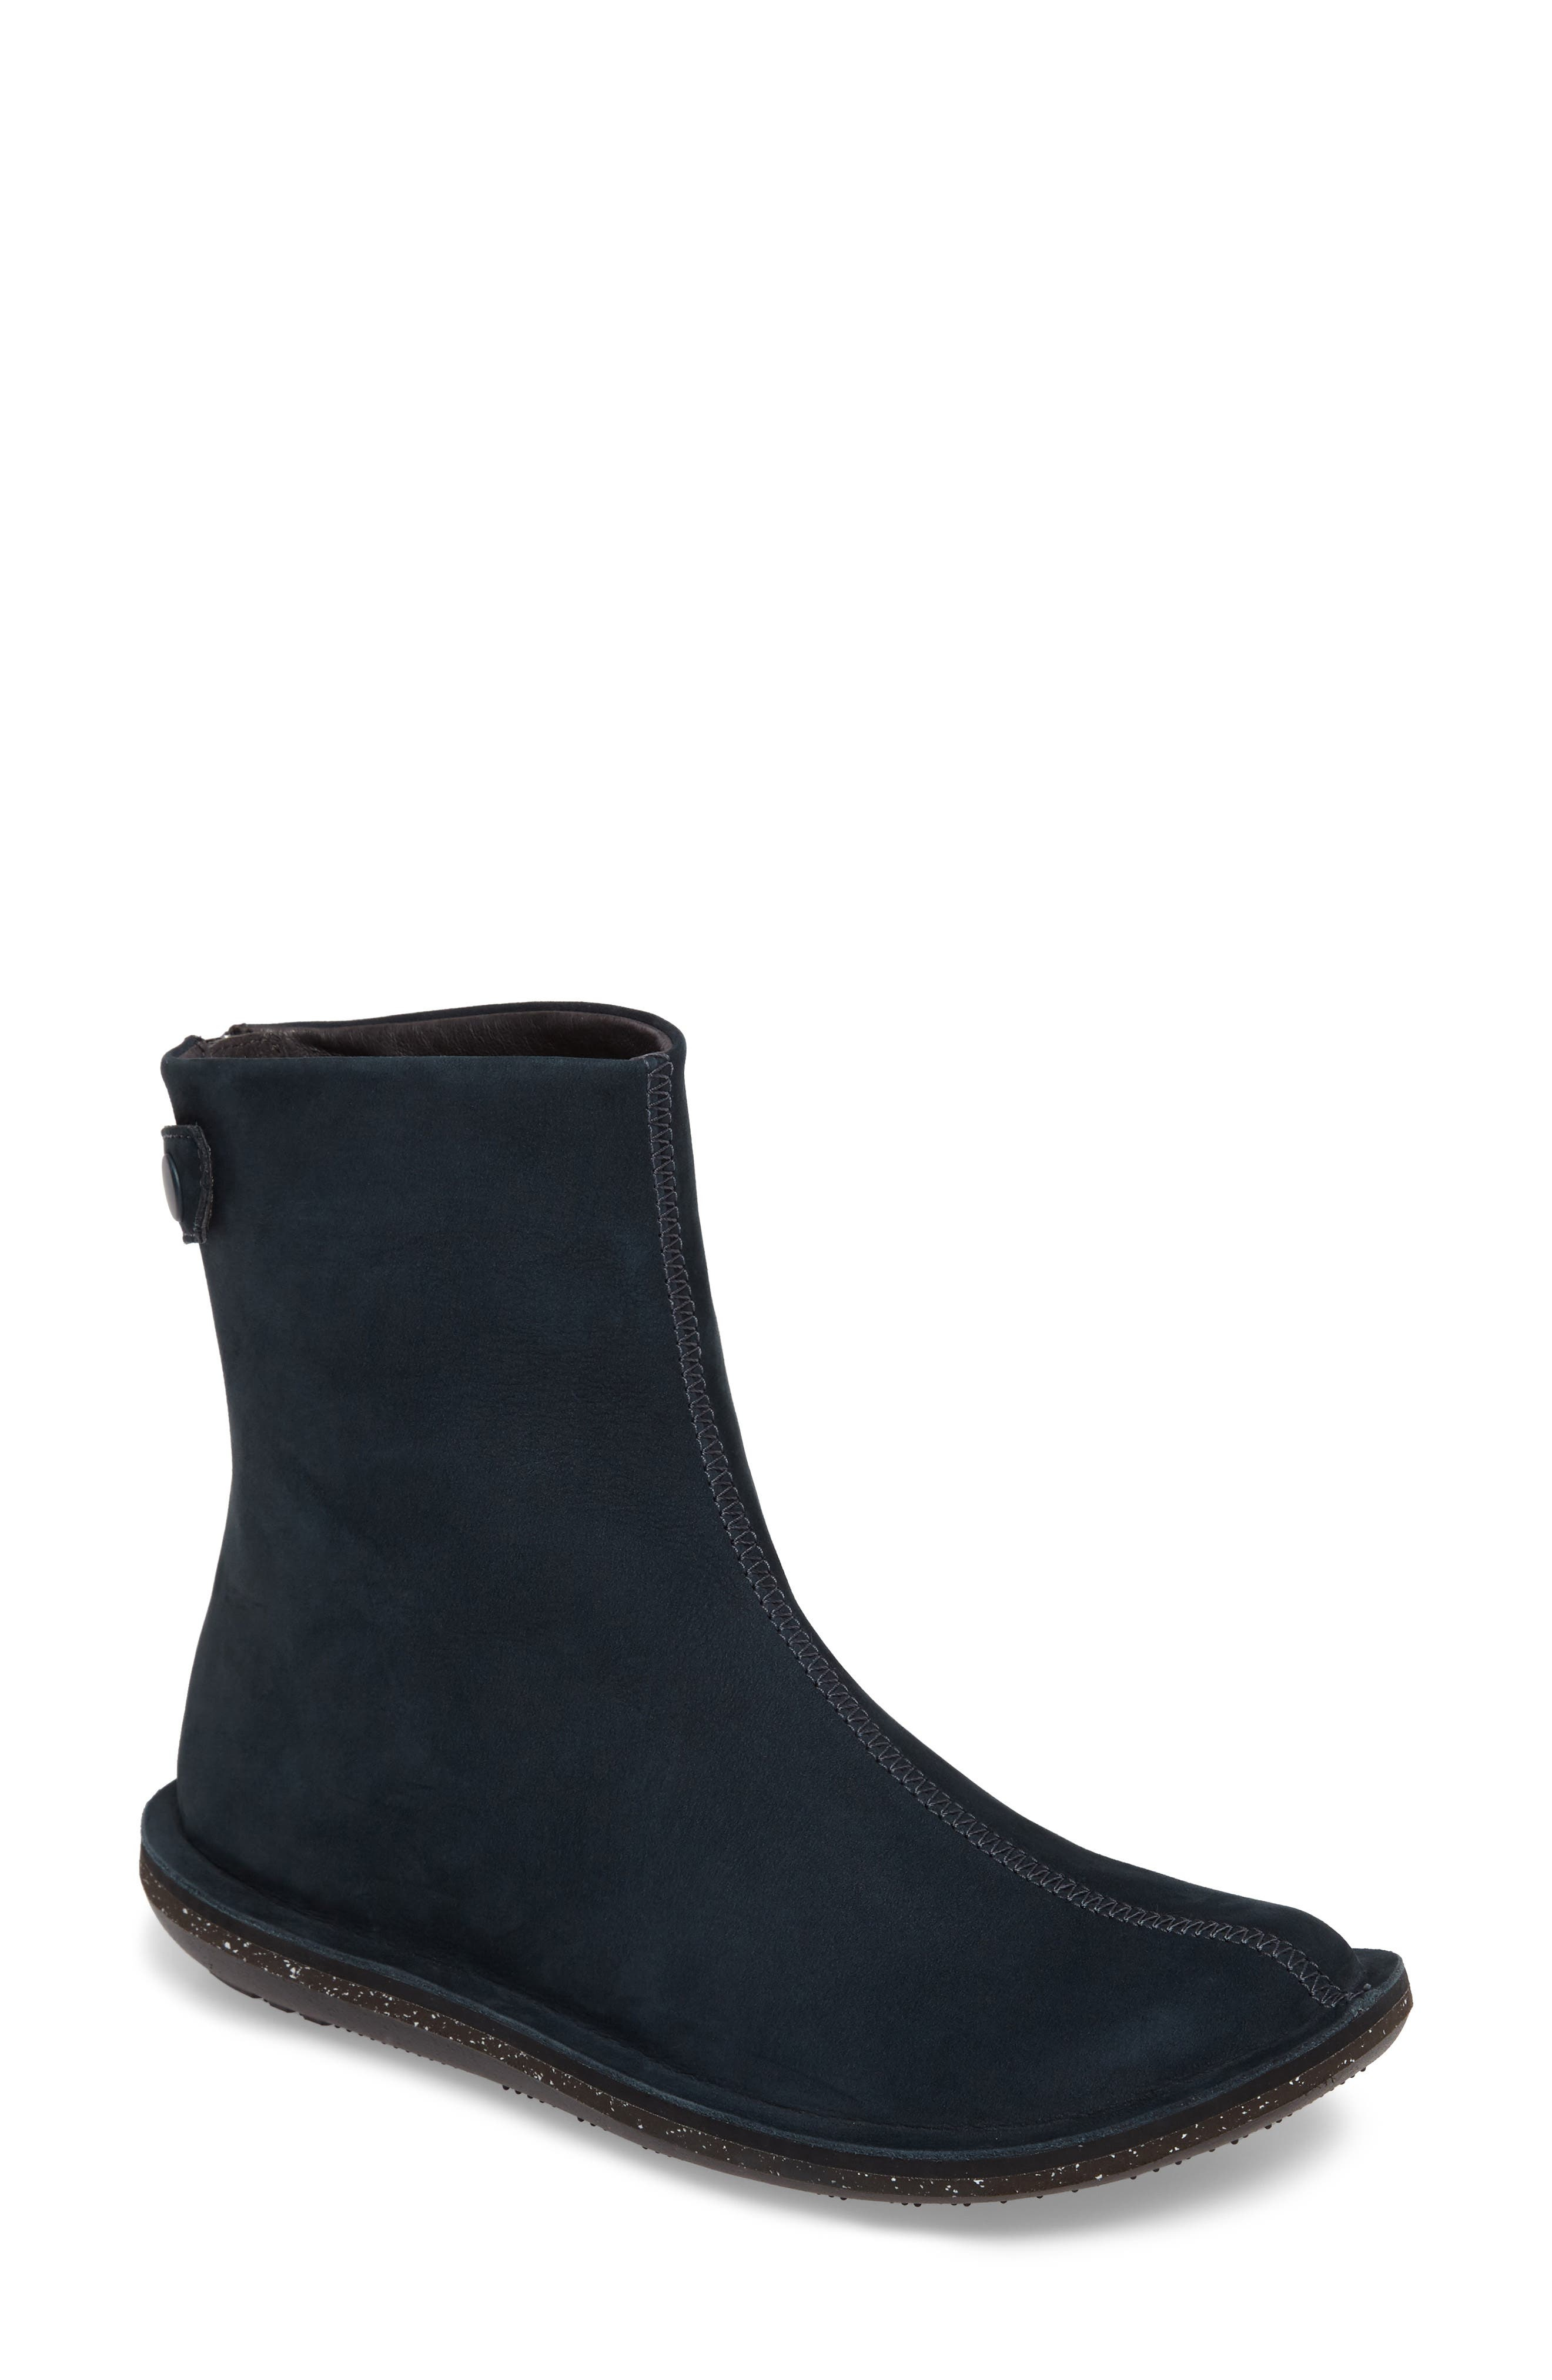 'Beetle Mid' Boot,                         Main,                         color, Dark Blue Leather